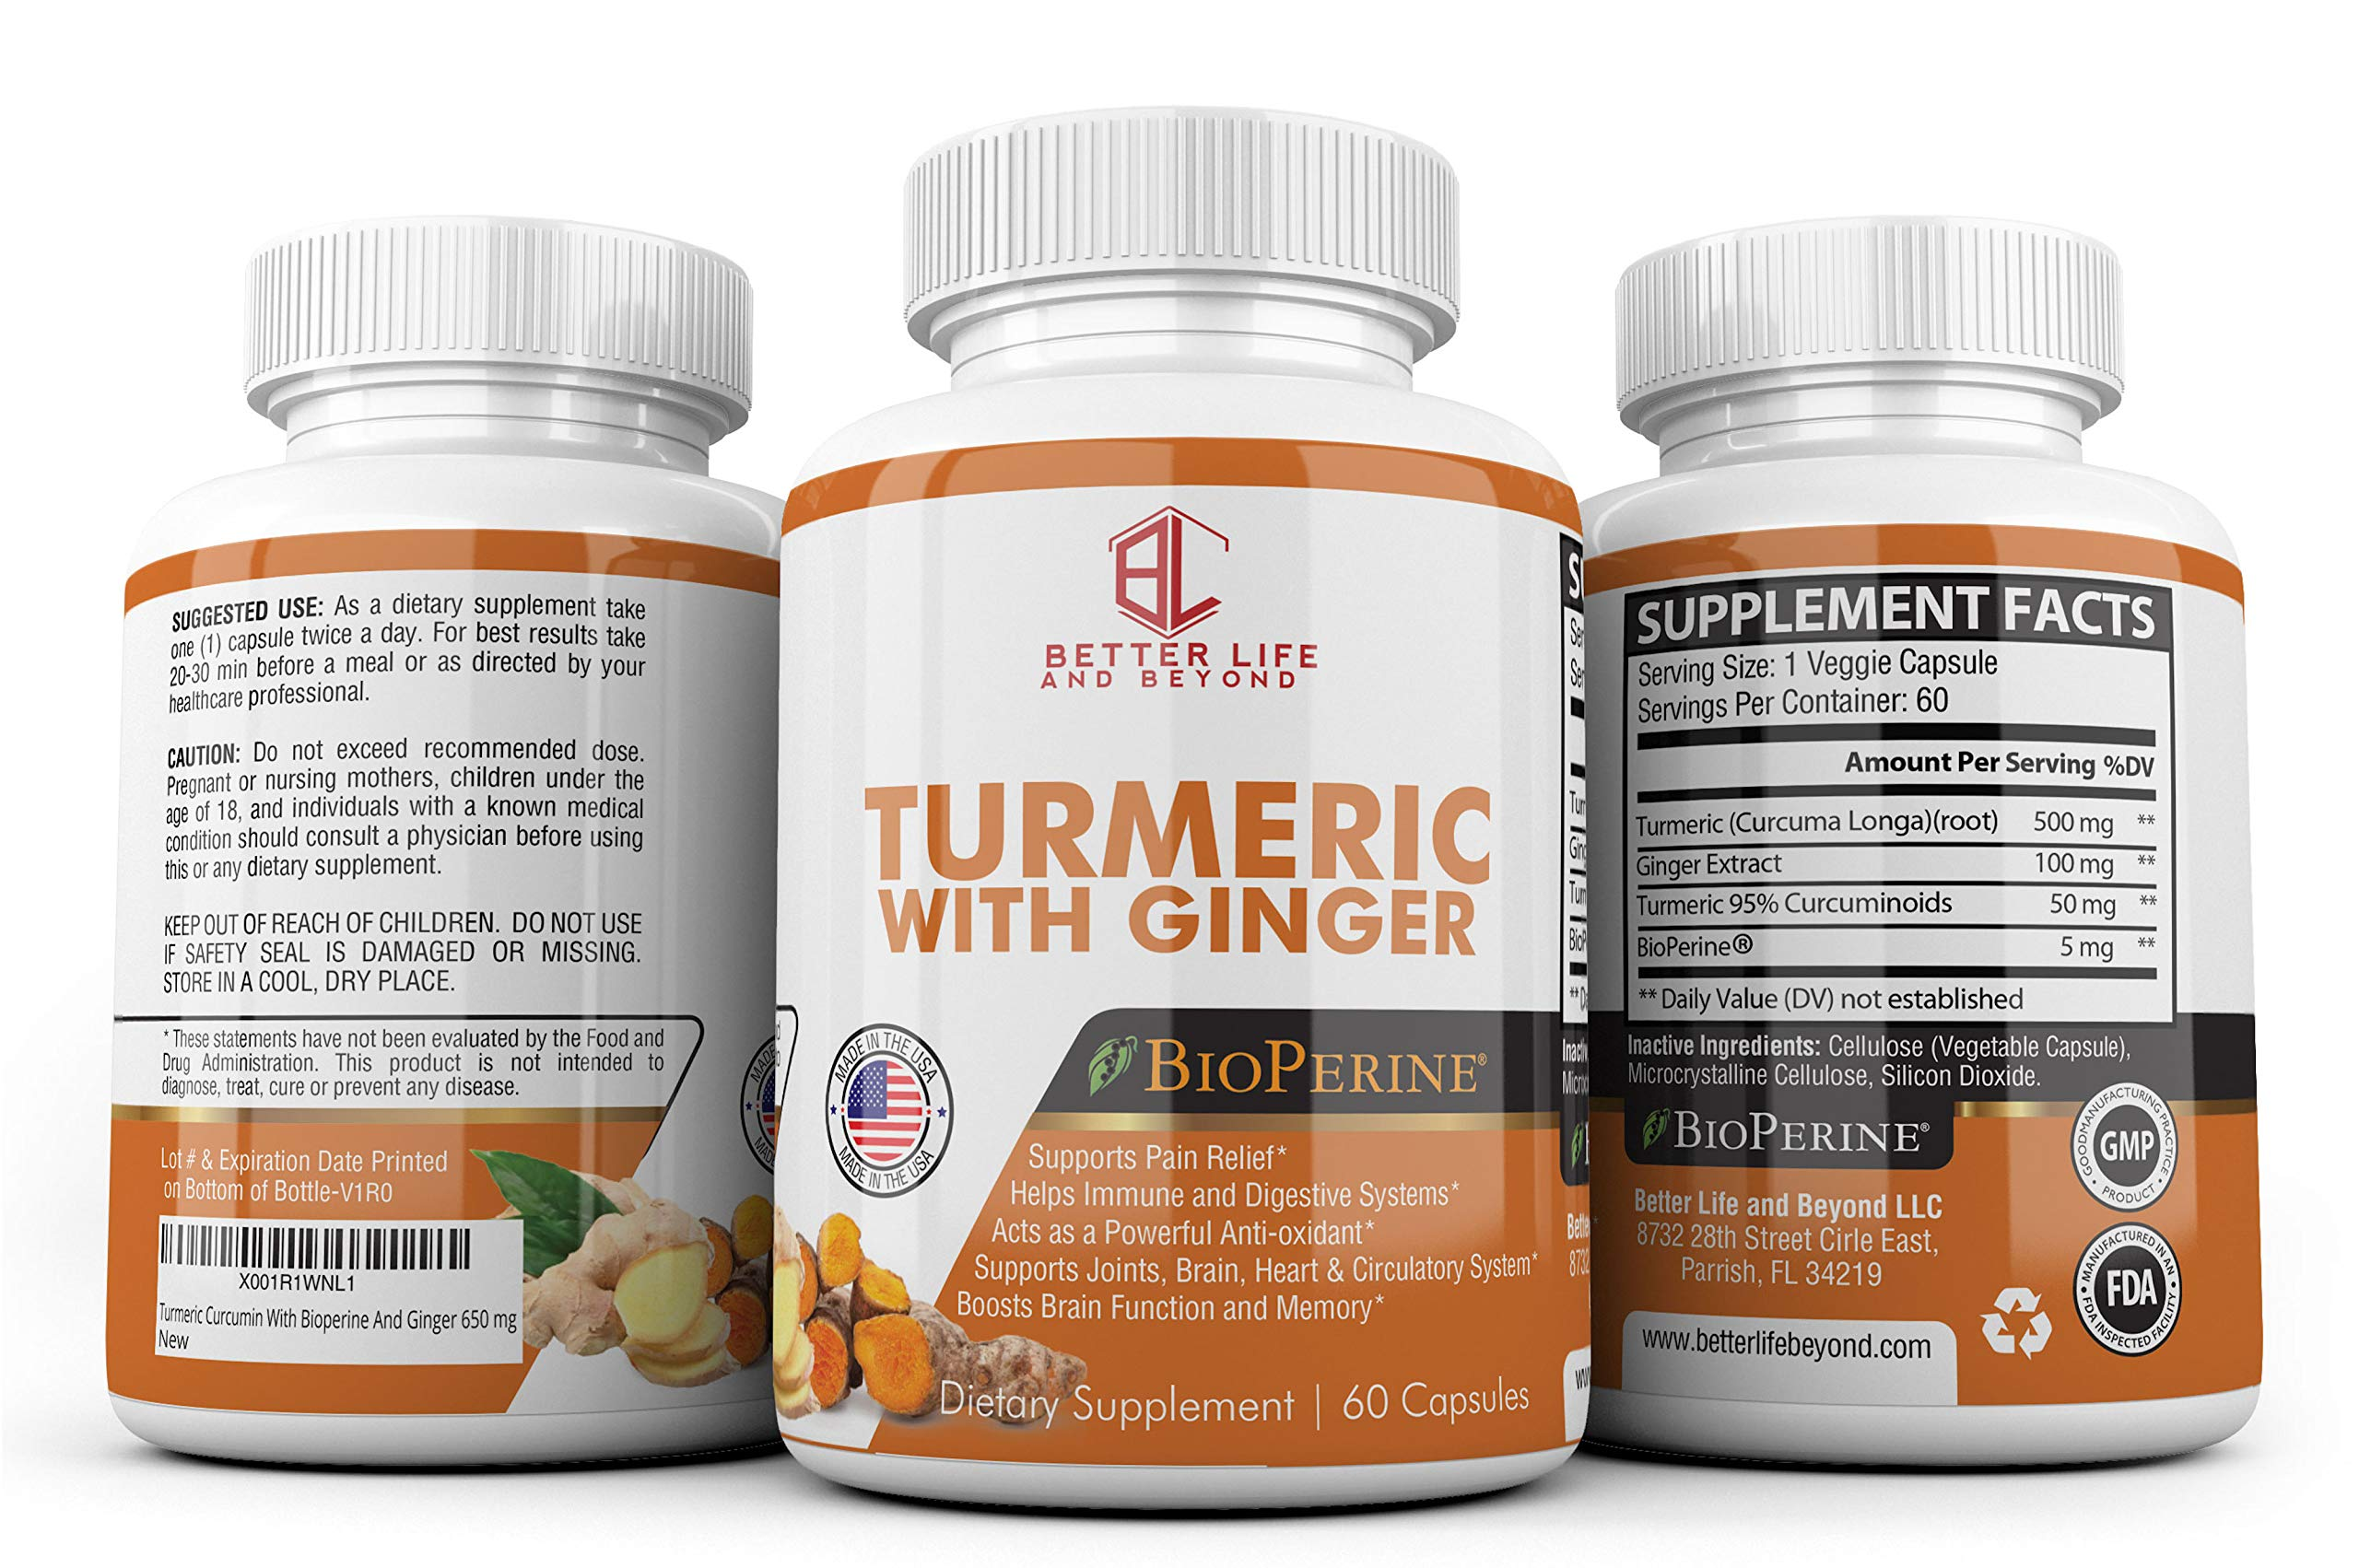 Better Life & Beyond Natural Turmeric Curcumin with Bioperine and Ginger 650mg Anti-oxidant, Reduces Stress, Heart, Joint & Digestive Support. Safe & Effective Dietary Supplement.